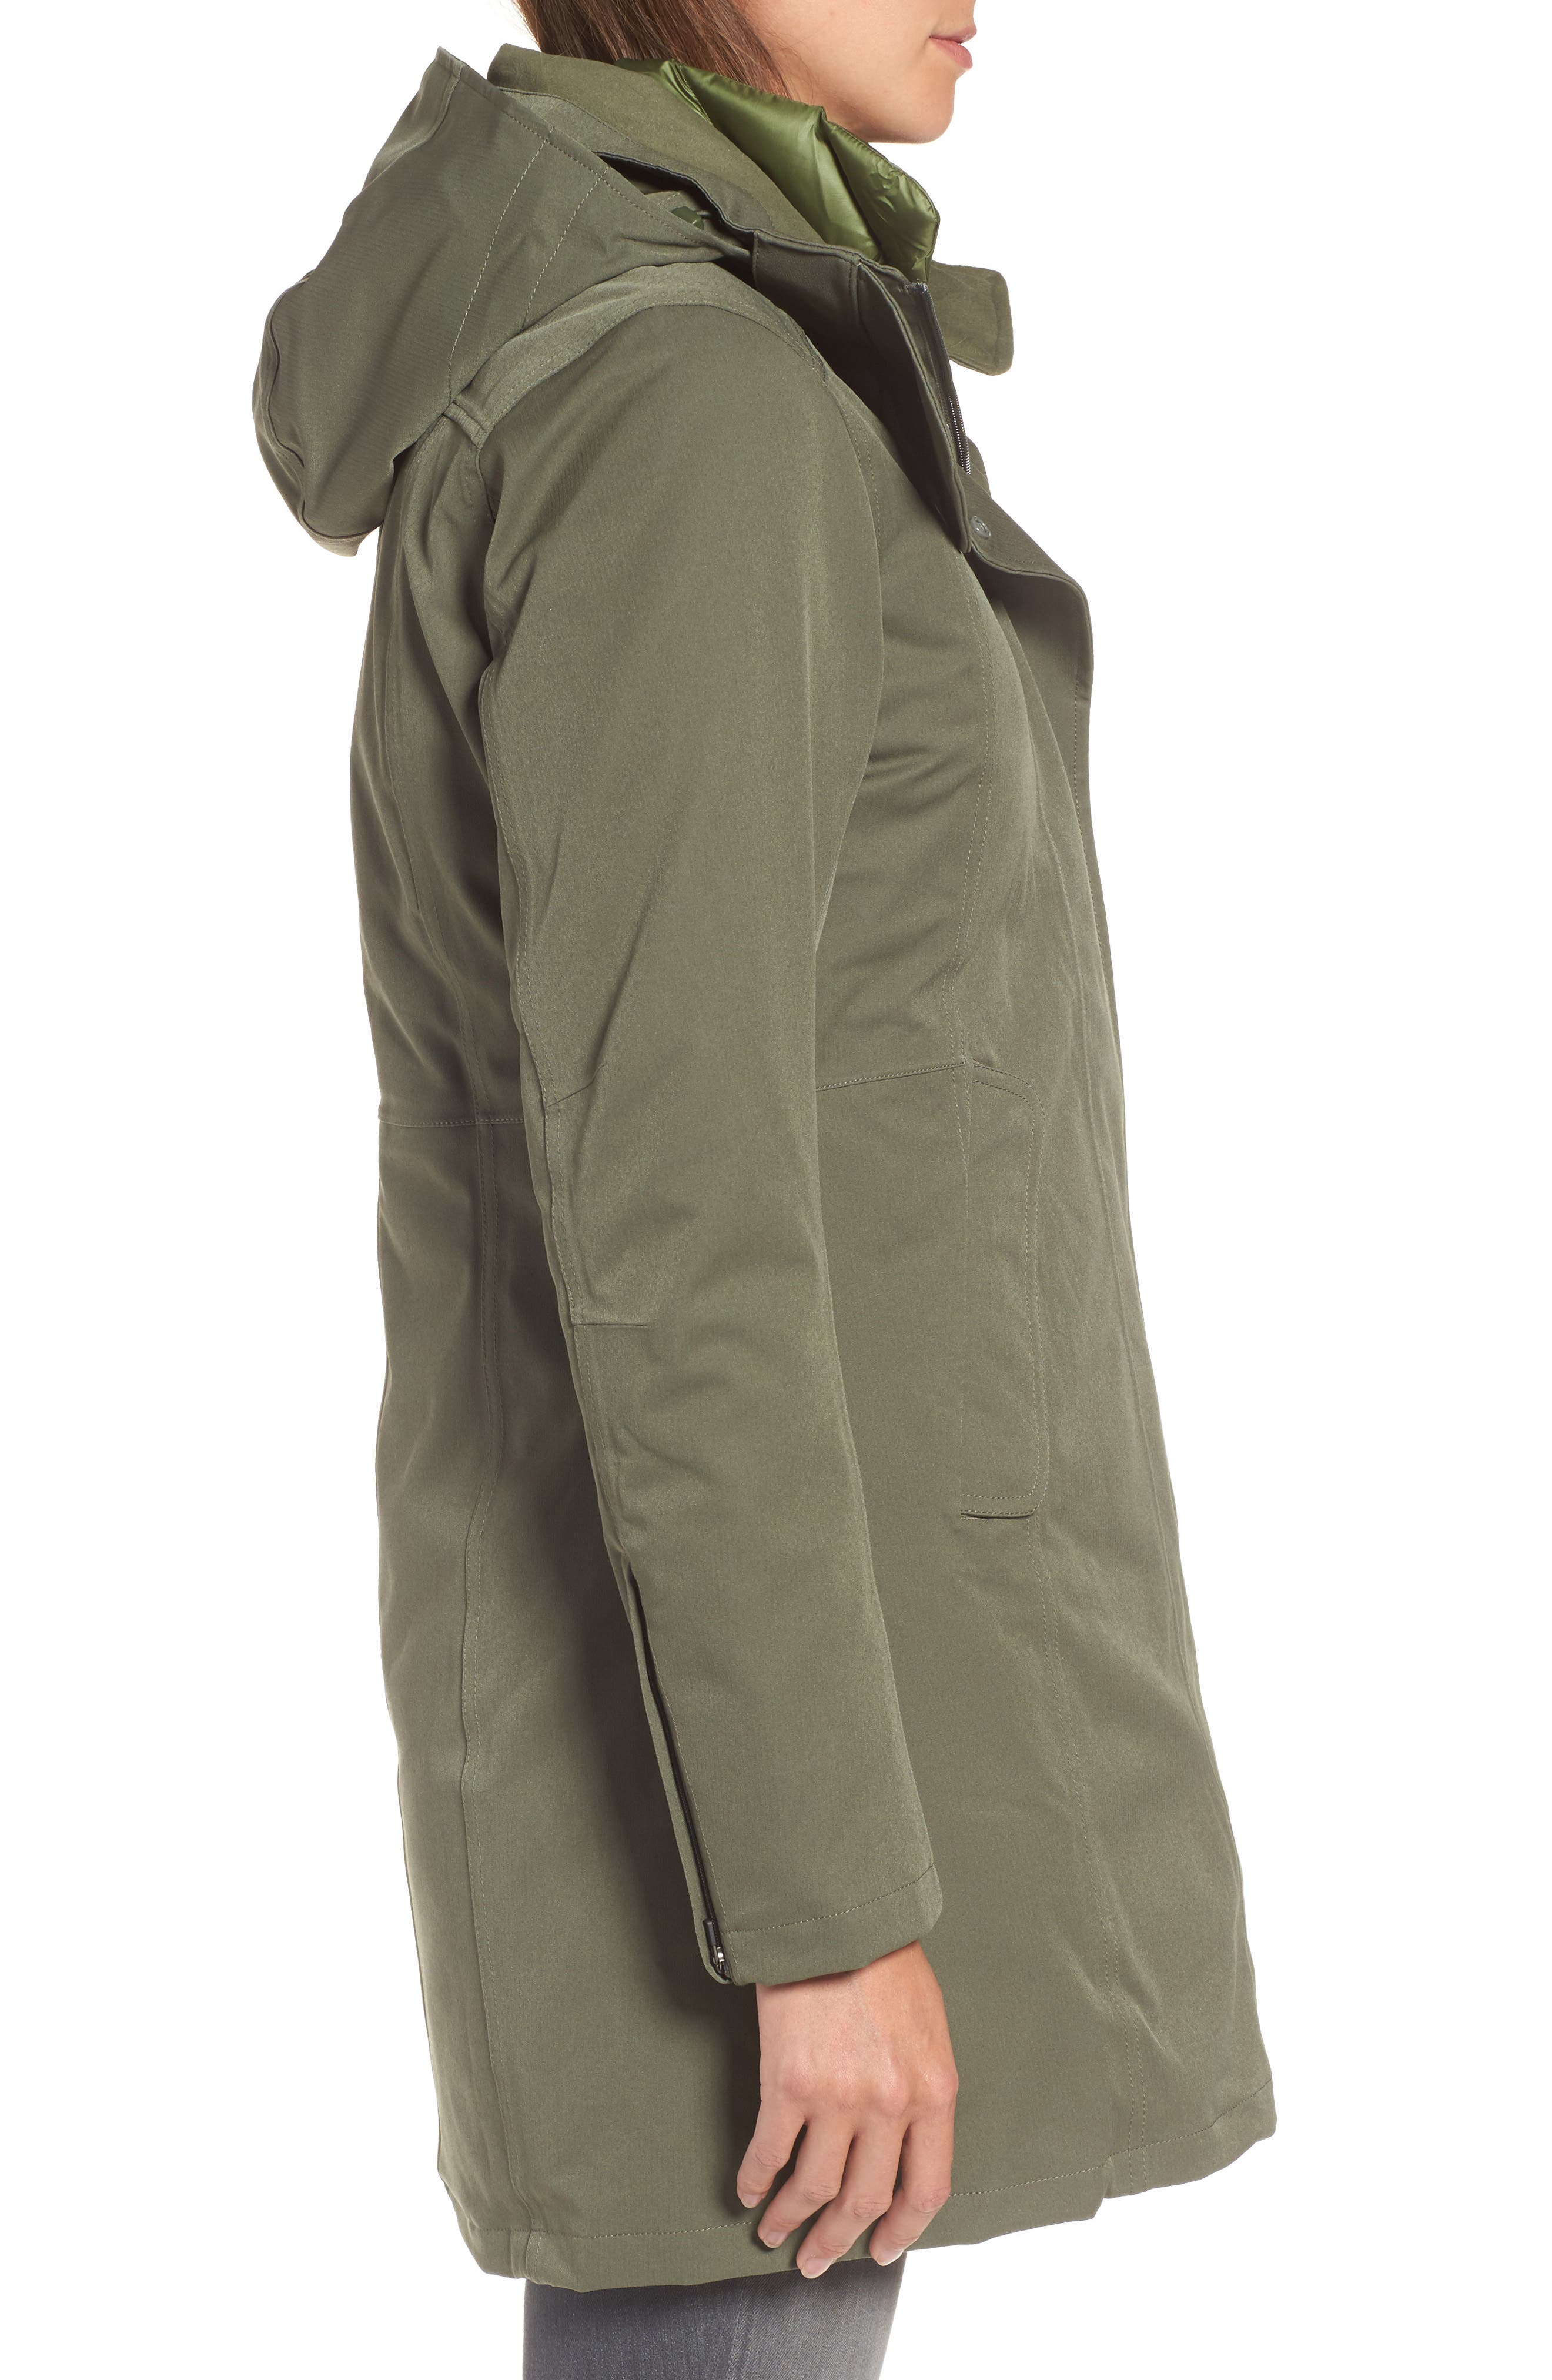 Tres Waterproof 3-in-1 Parka,                             Alternate thumbnail 3, color,                             301